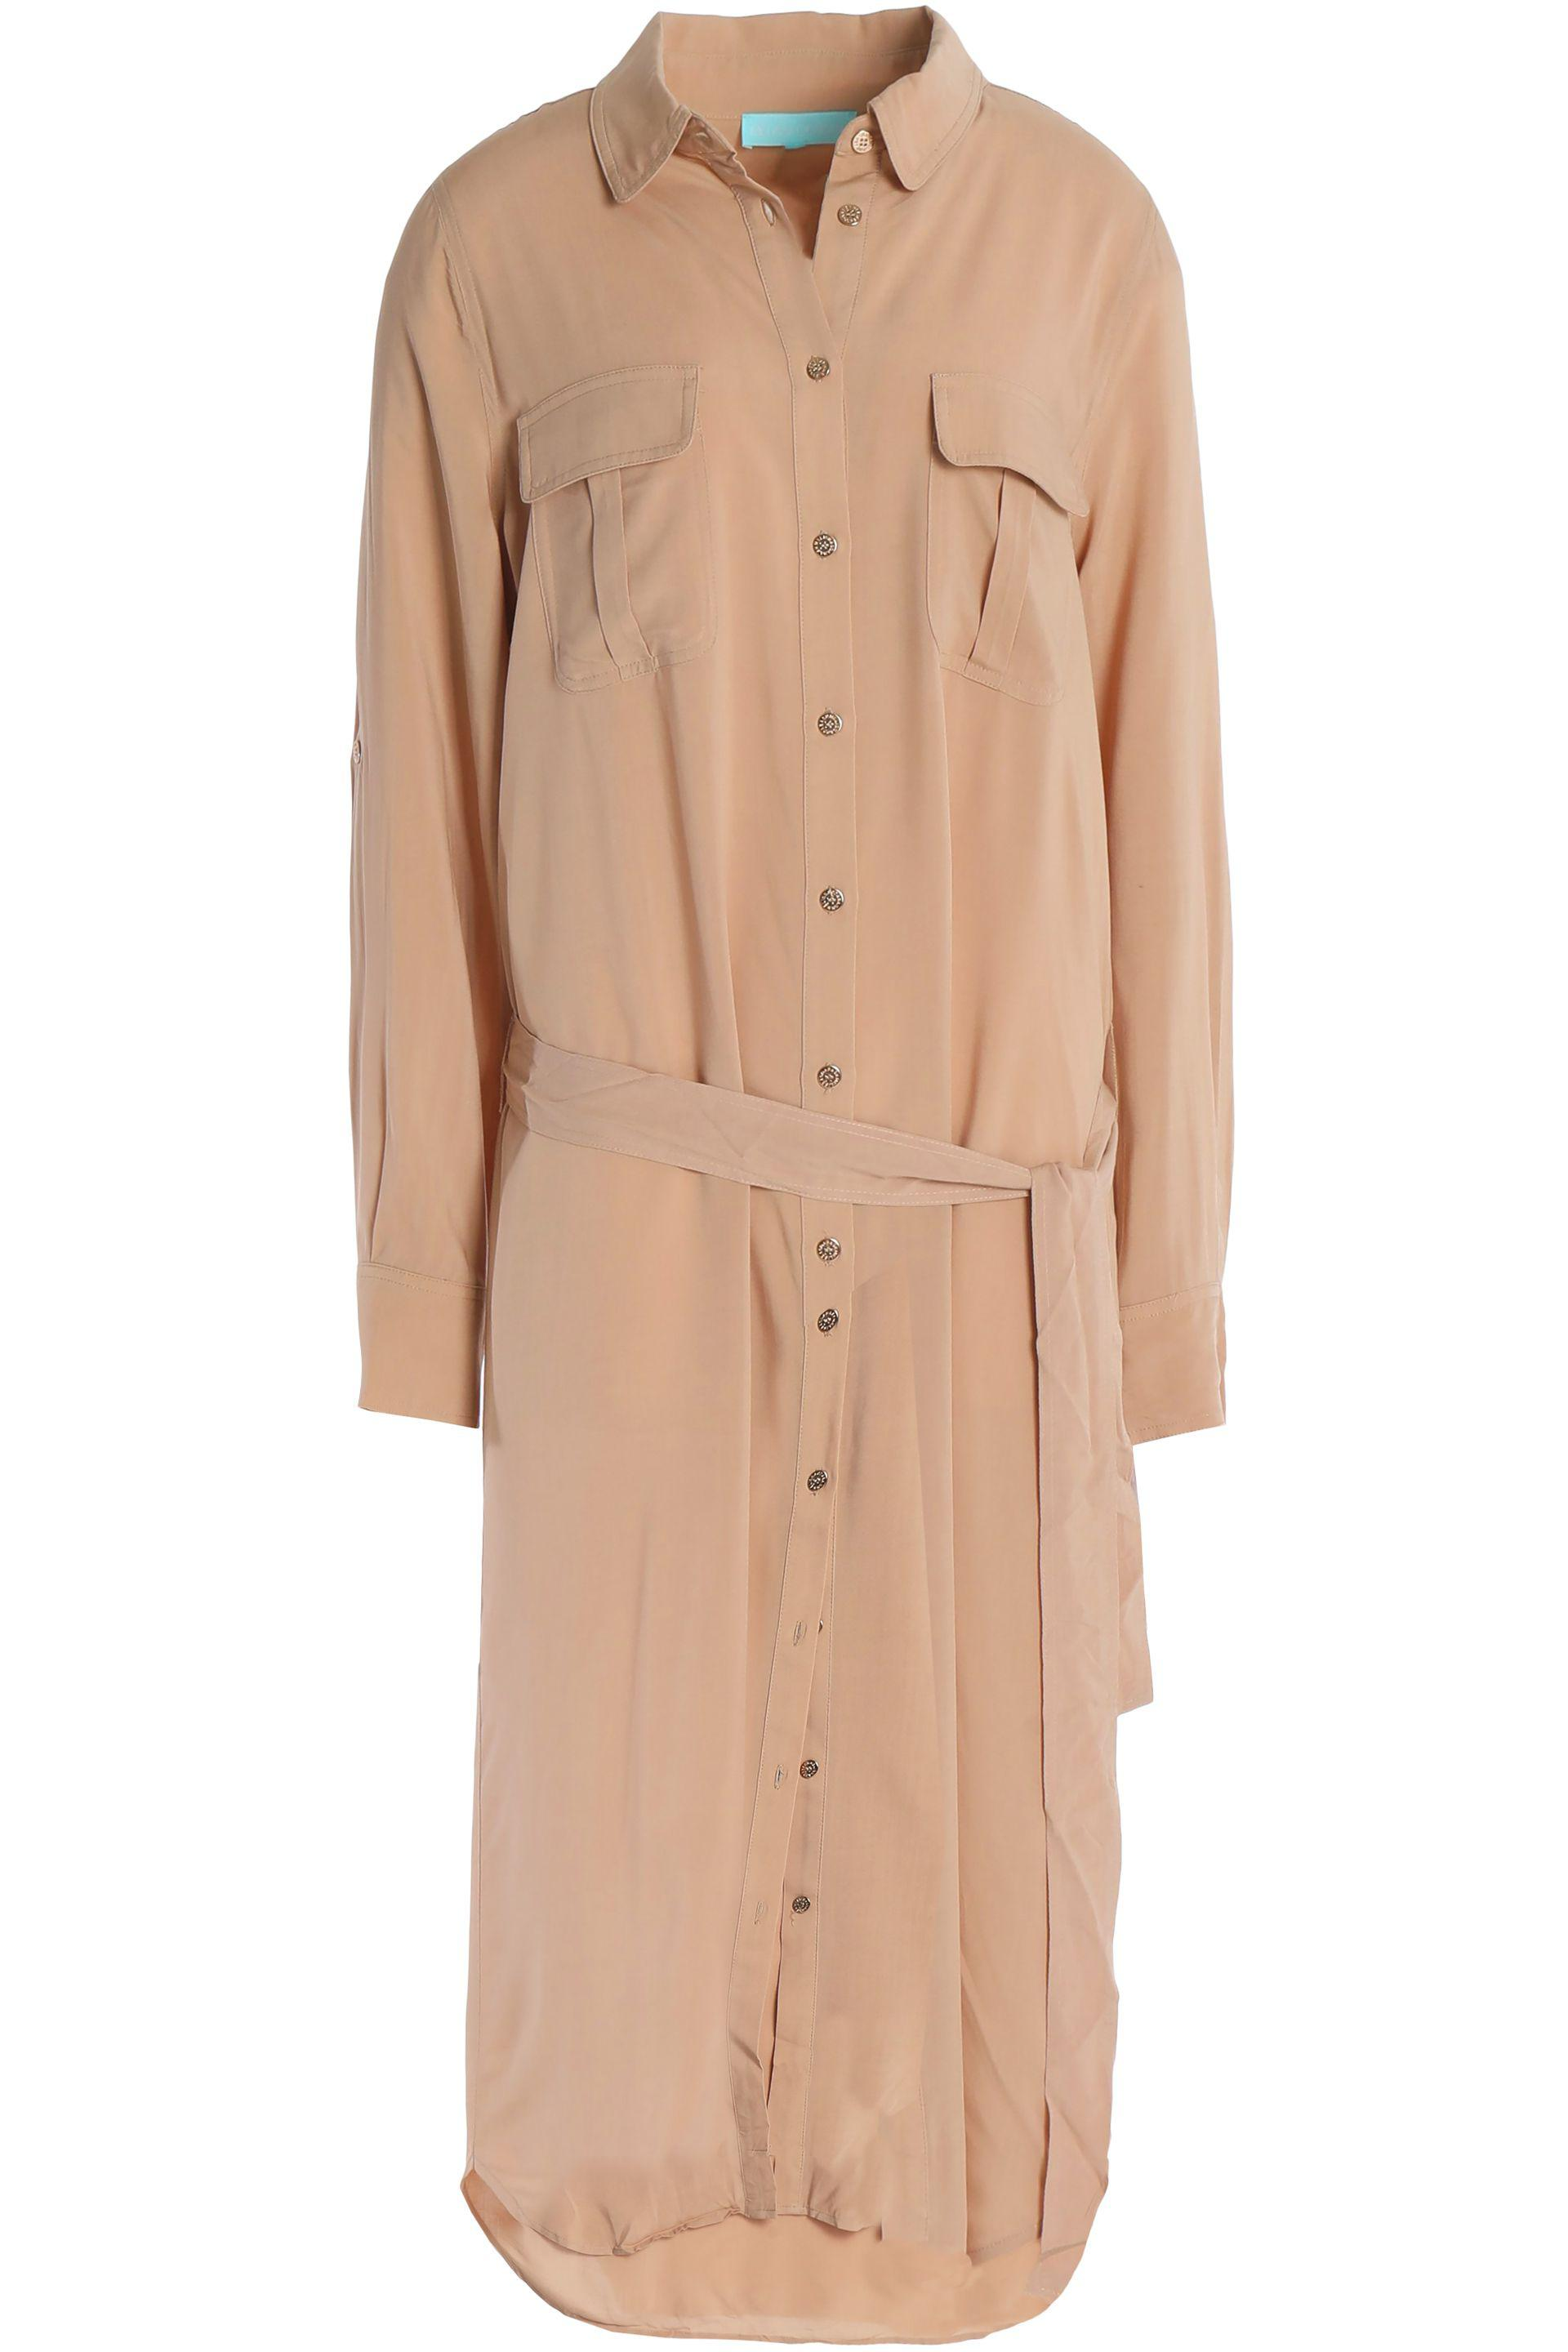 Cheap Browse Melissa Odabash Woman Maryanne Belted Brushed-jersey Midi Shirt Dress Beige Size L Melissa Odabash Brand New Unisex Cheap Price Cheap Sale Low Shipping Classic Online Cheap Online RYu10G